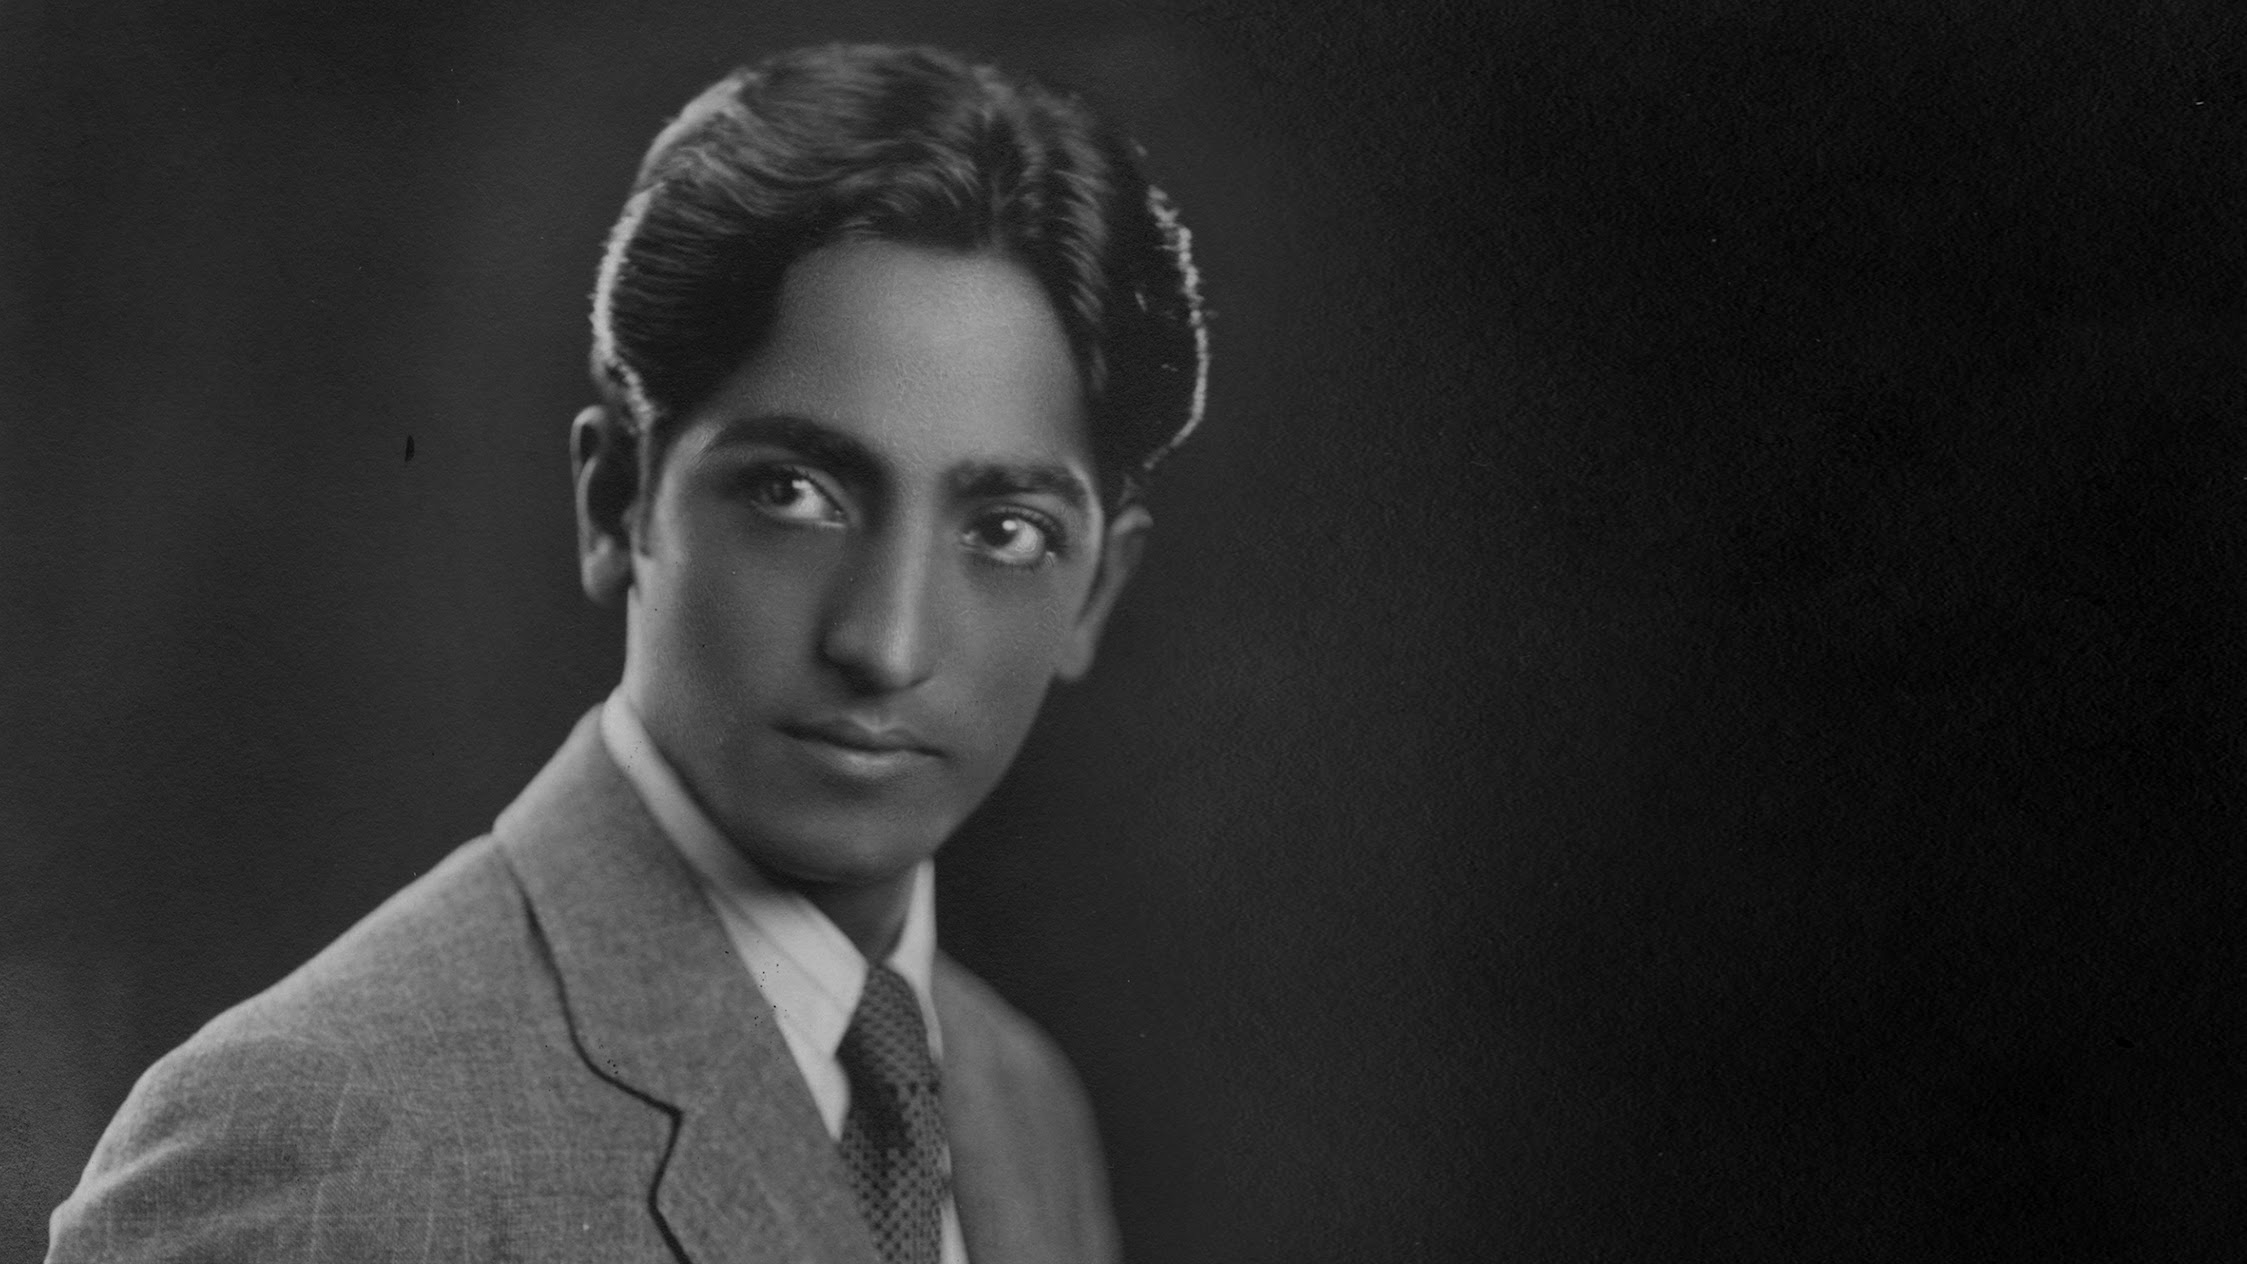 jiddu krishnamurti Jiddu krishnamurti jiddu krishnamurti was a public speaker, mystic, author, philosopher and writer on philosophical and spiritual subjects in his early life he was.